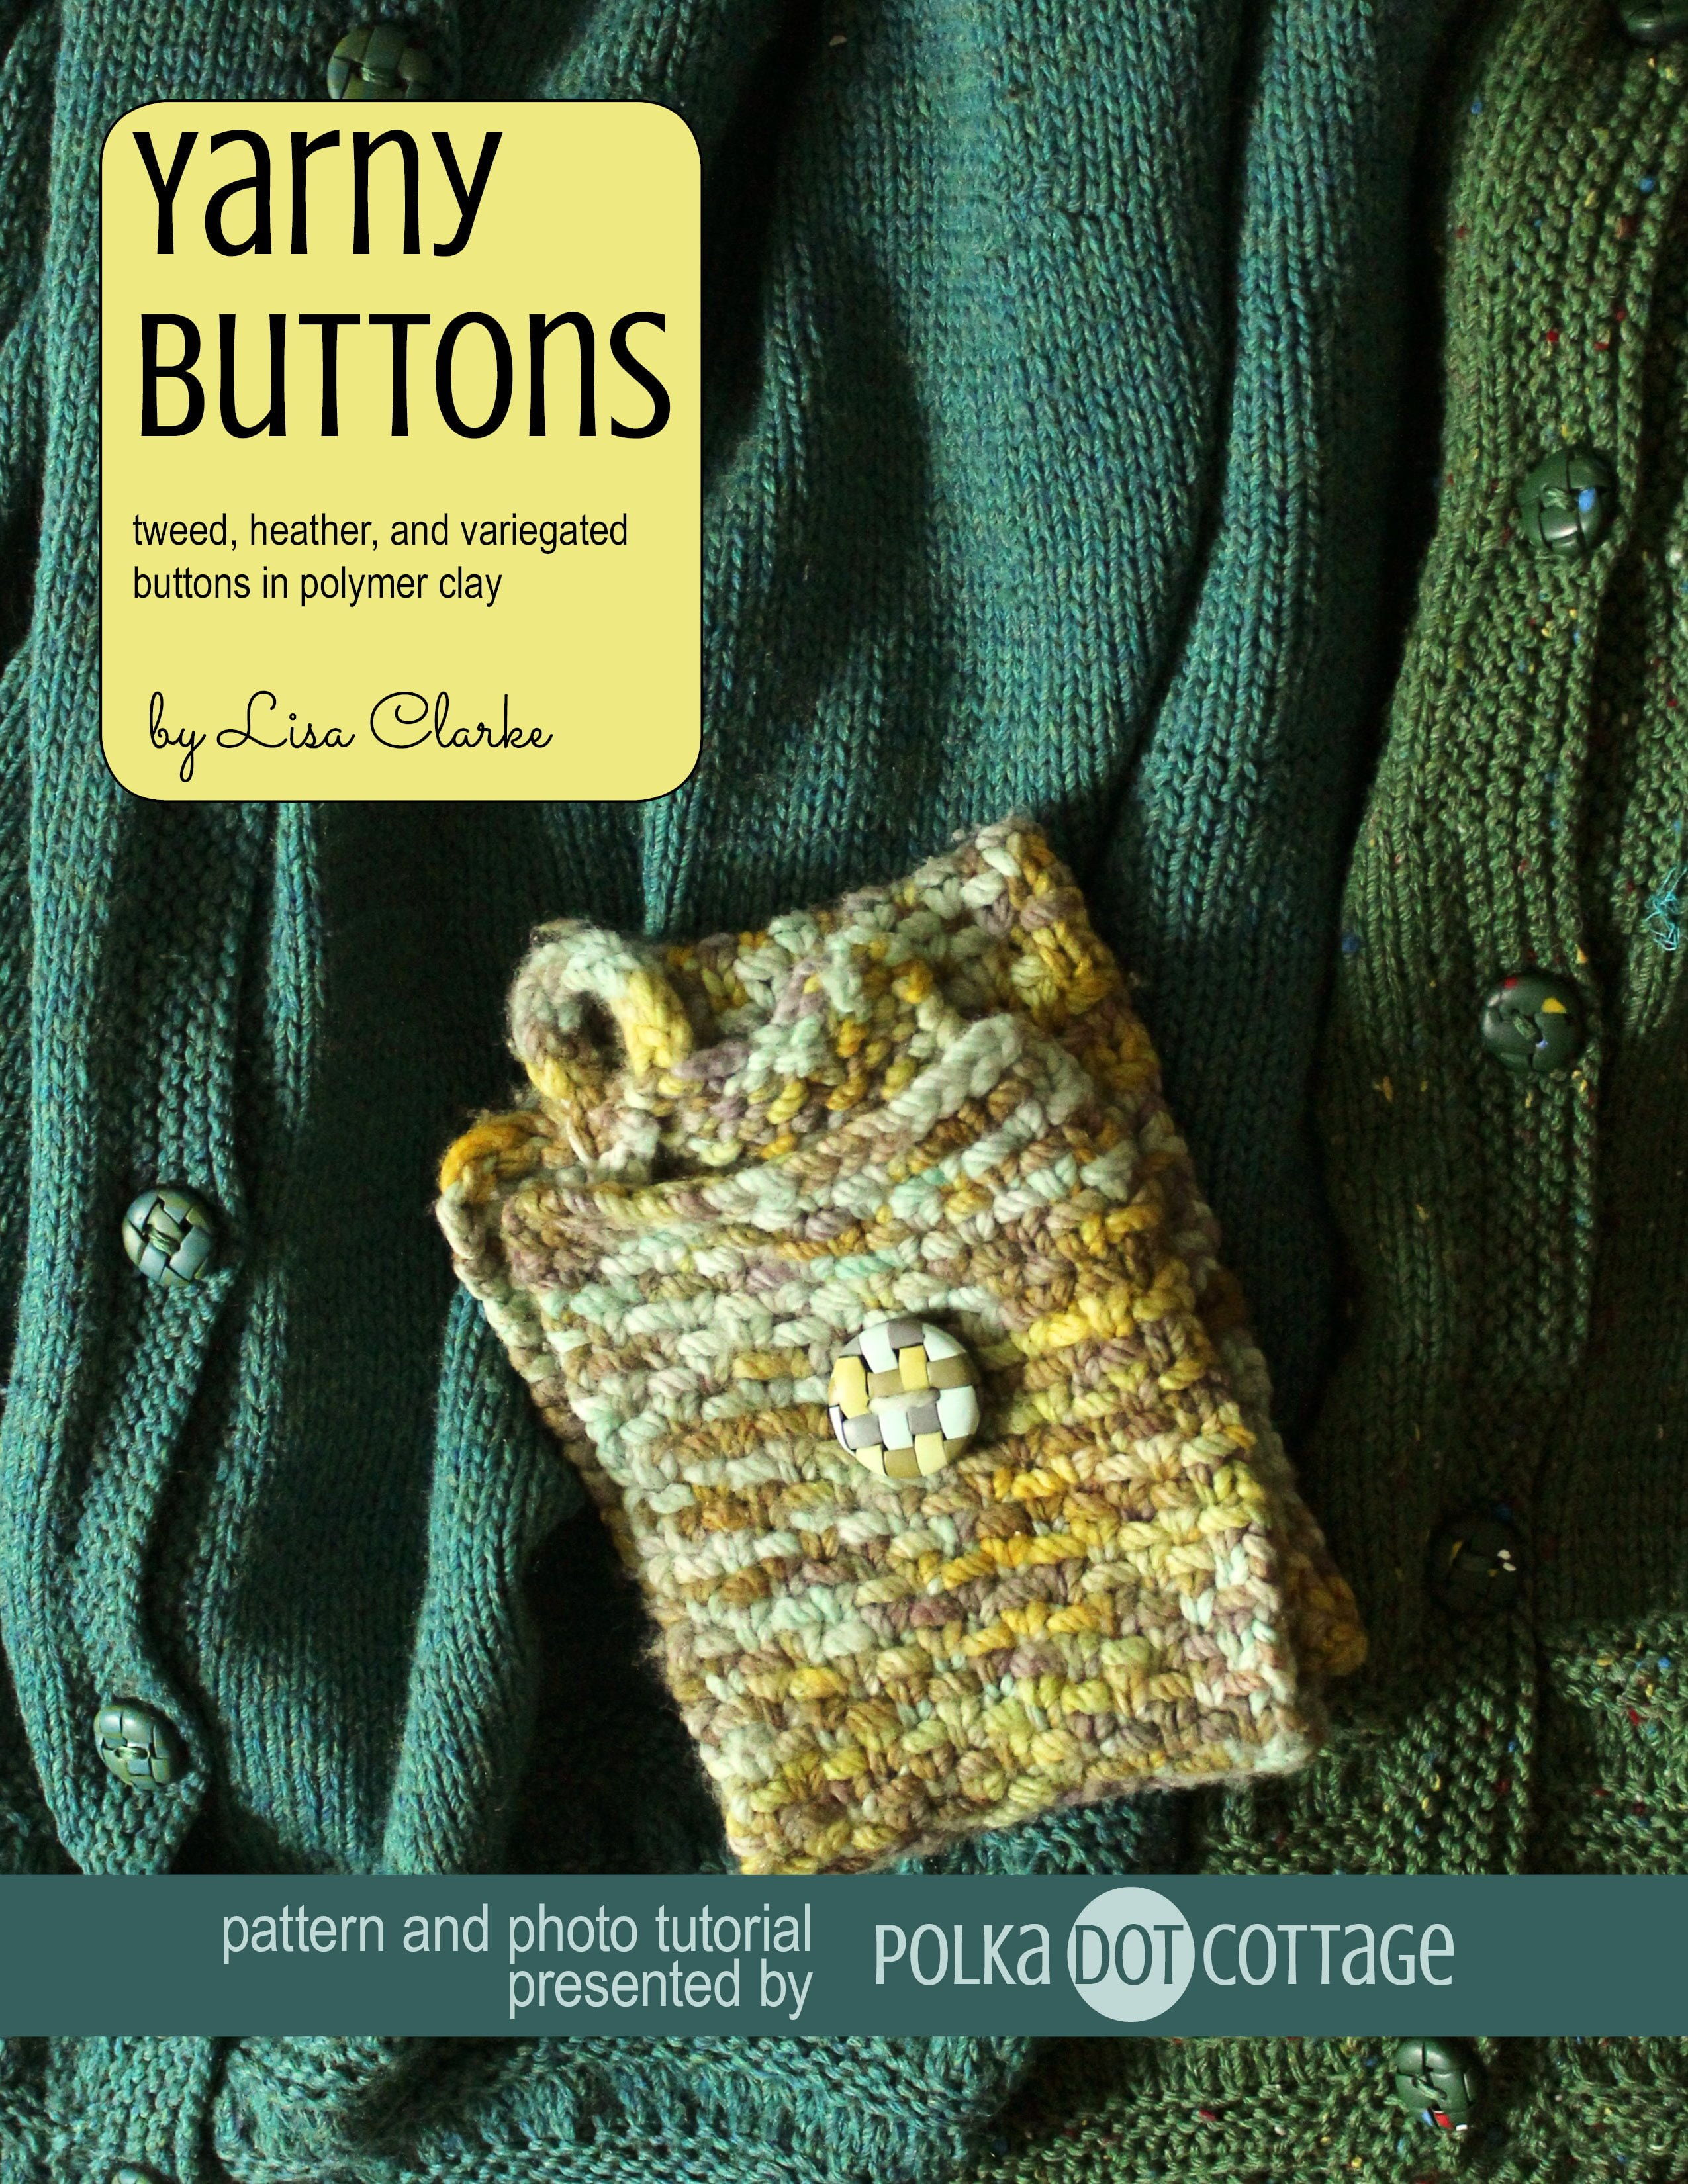 Yarny Buttons polymer clay tutorial from Polka Dot Cottage